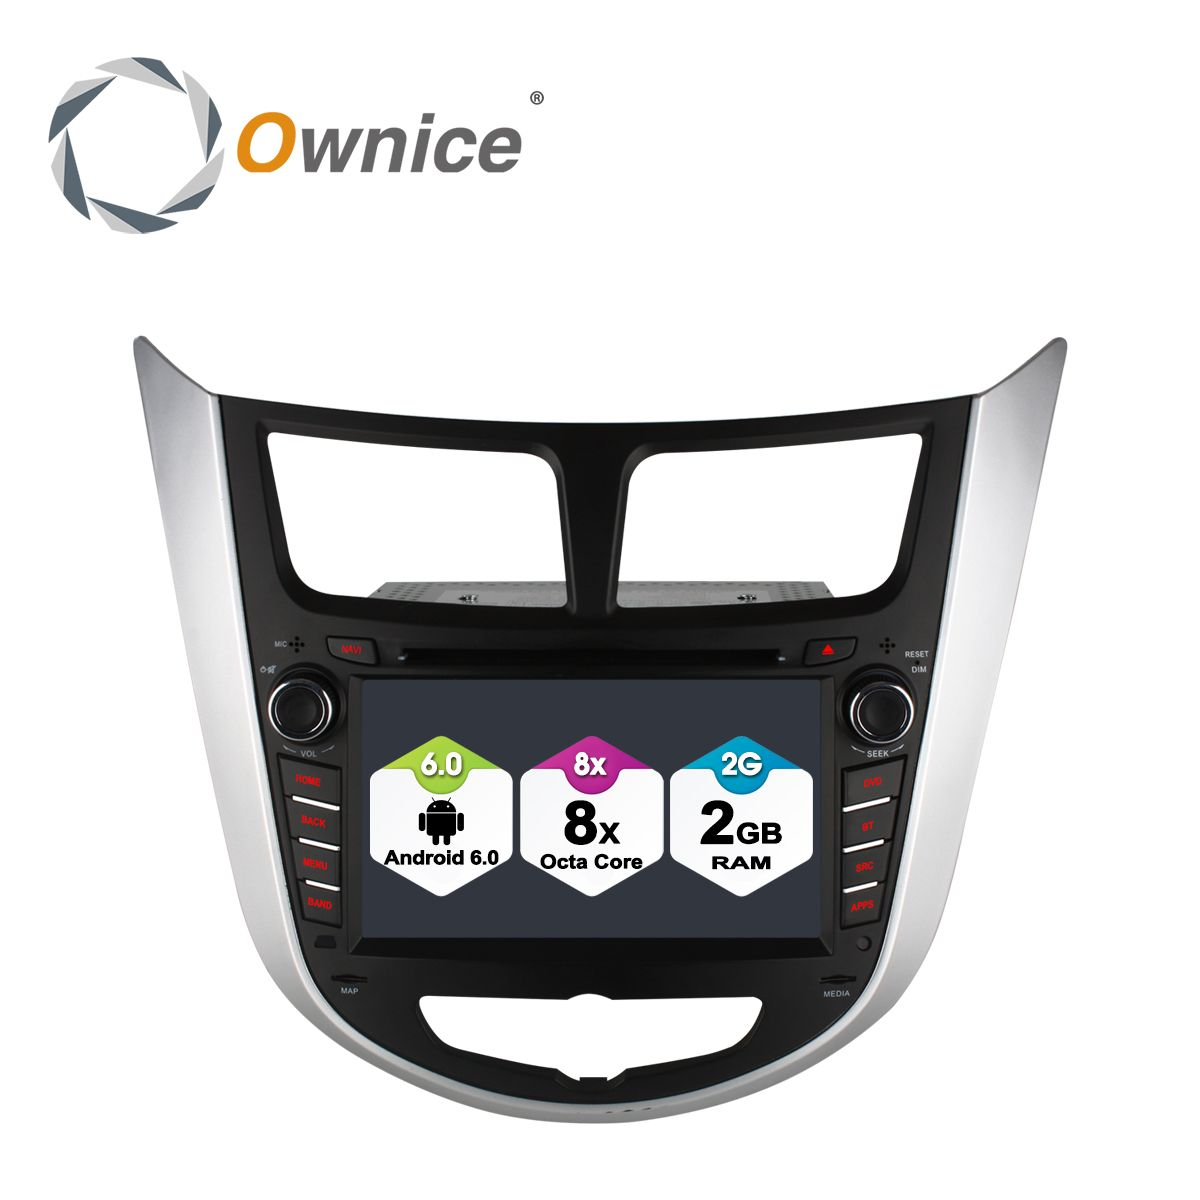 Ownice C500 Android 6.0 2G RAM Octa Core Car dvd gps player for Hyundai Solaris Verna car radio player with wifi 4G LTE Network